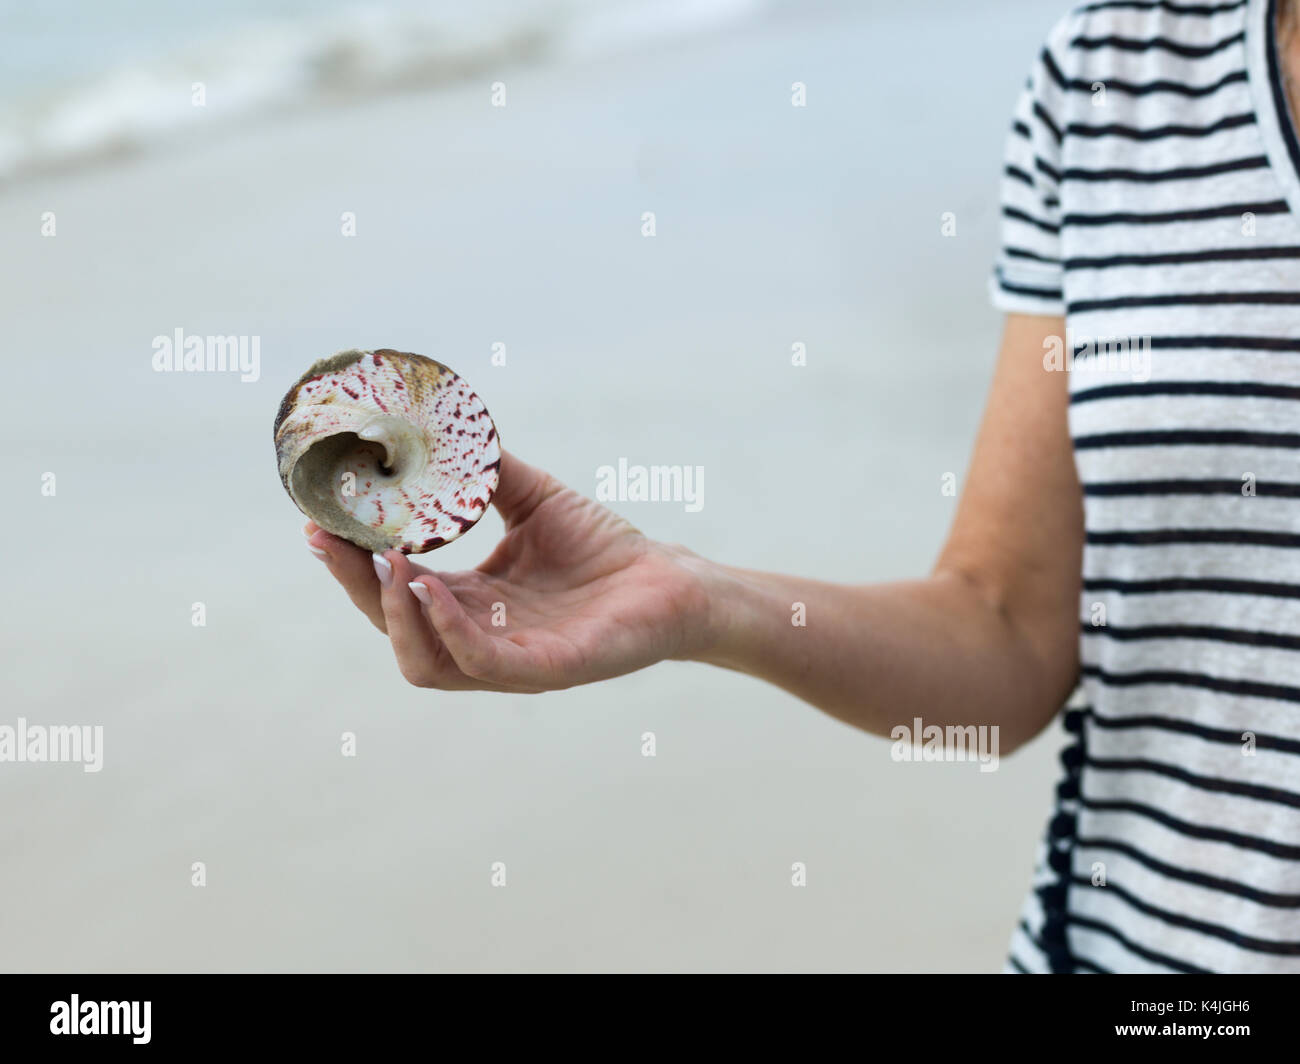 Close-up of person holding conch shell, Koh Samui, Surat Thani Province, Thailand - Stock Image